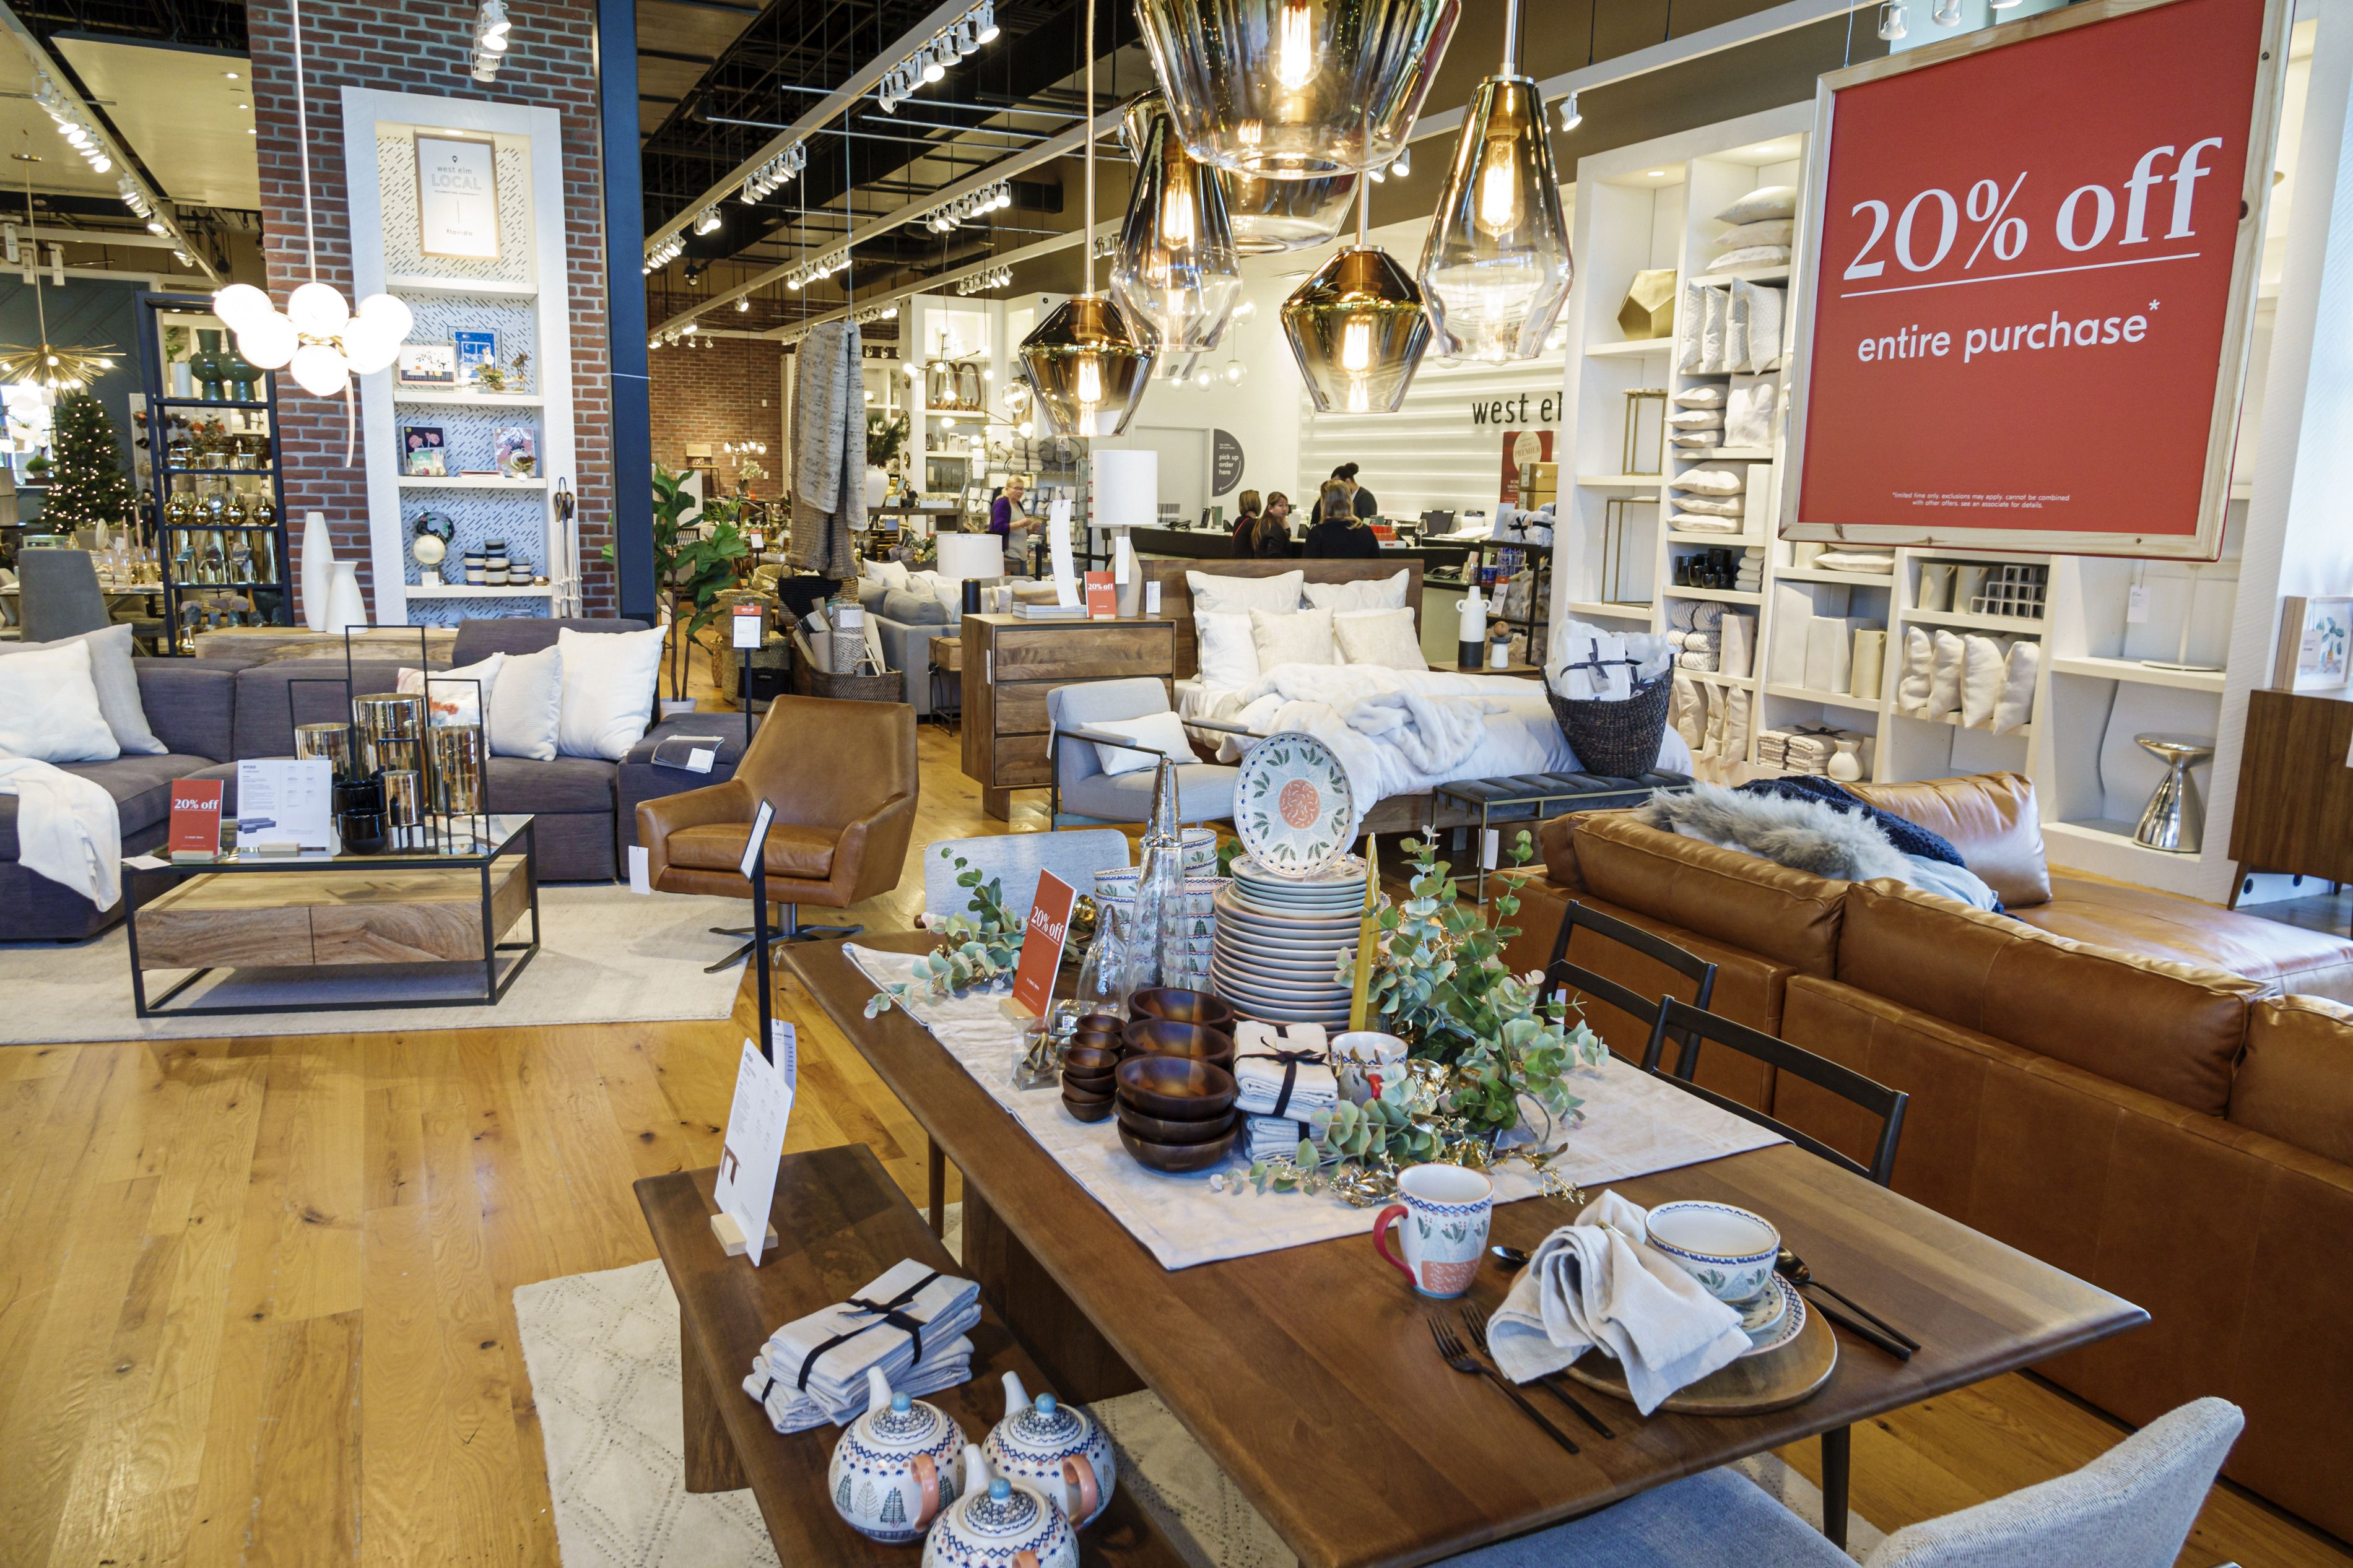 The interior of a Crate & Barrel store